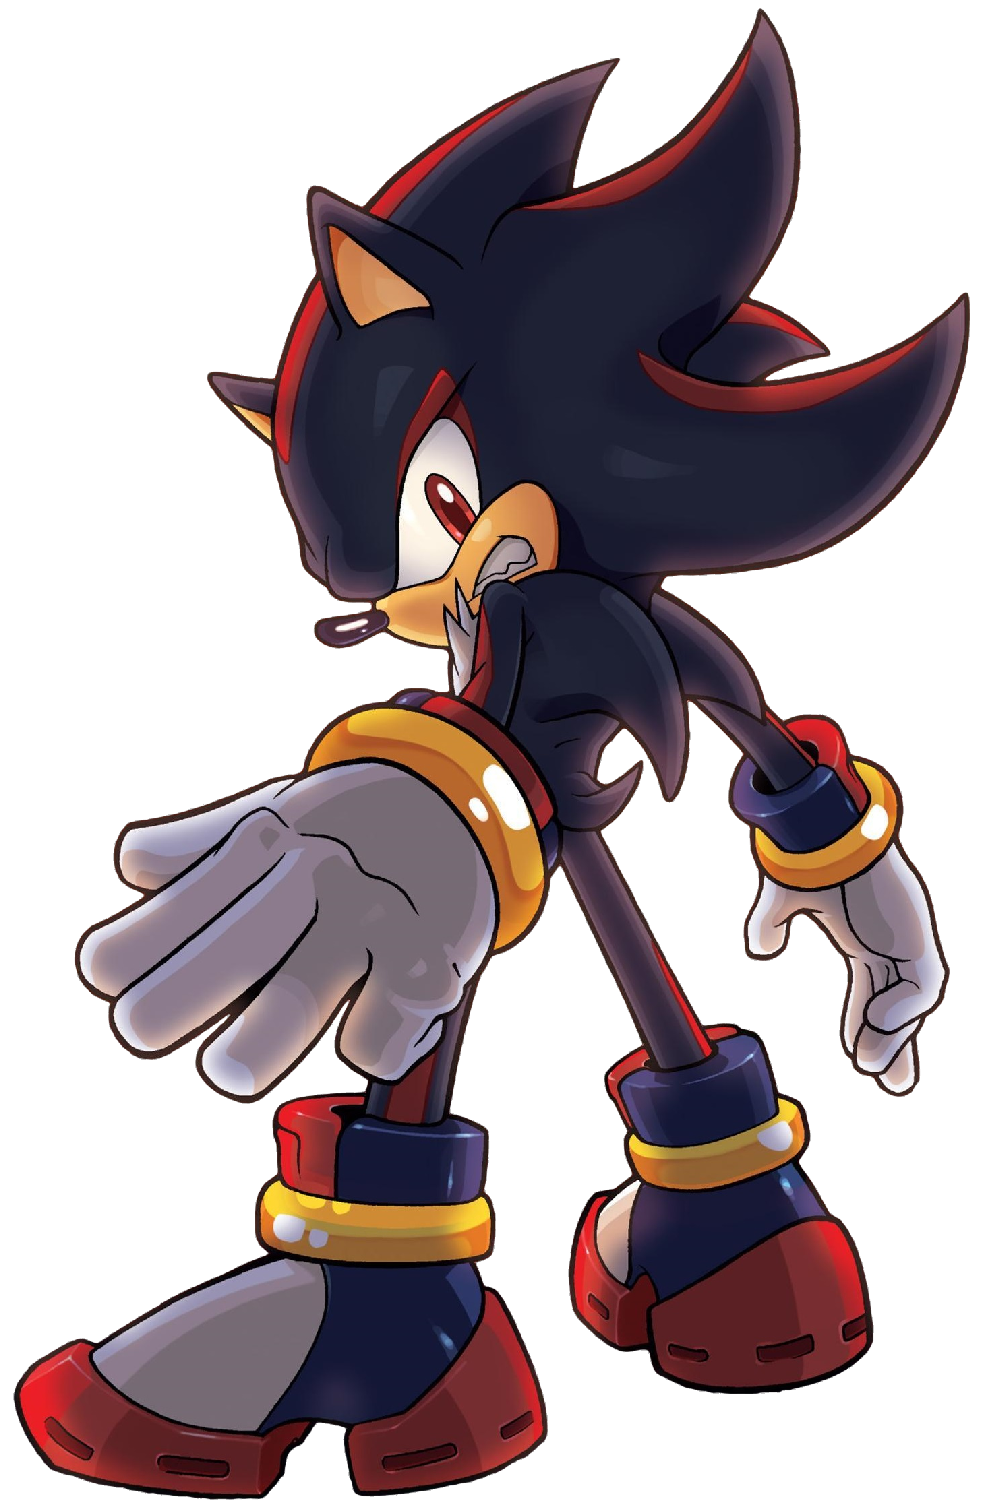 http://vignette3.wikia.nocookie.net/sonic/images/e/e6/Shadow_the_Hedgehog_Archie_profile.png/revision/latest?cb=20140709104634